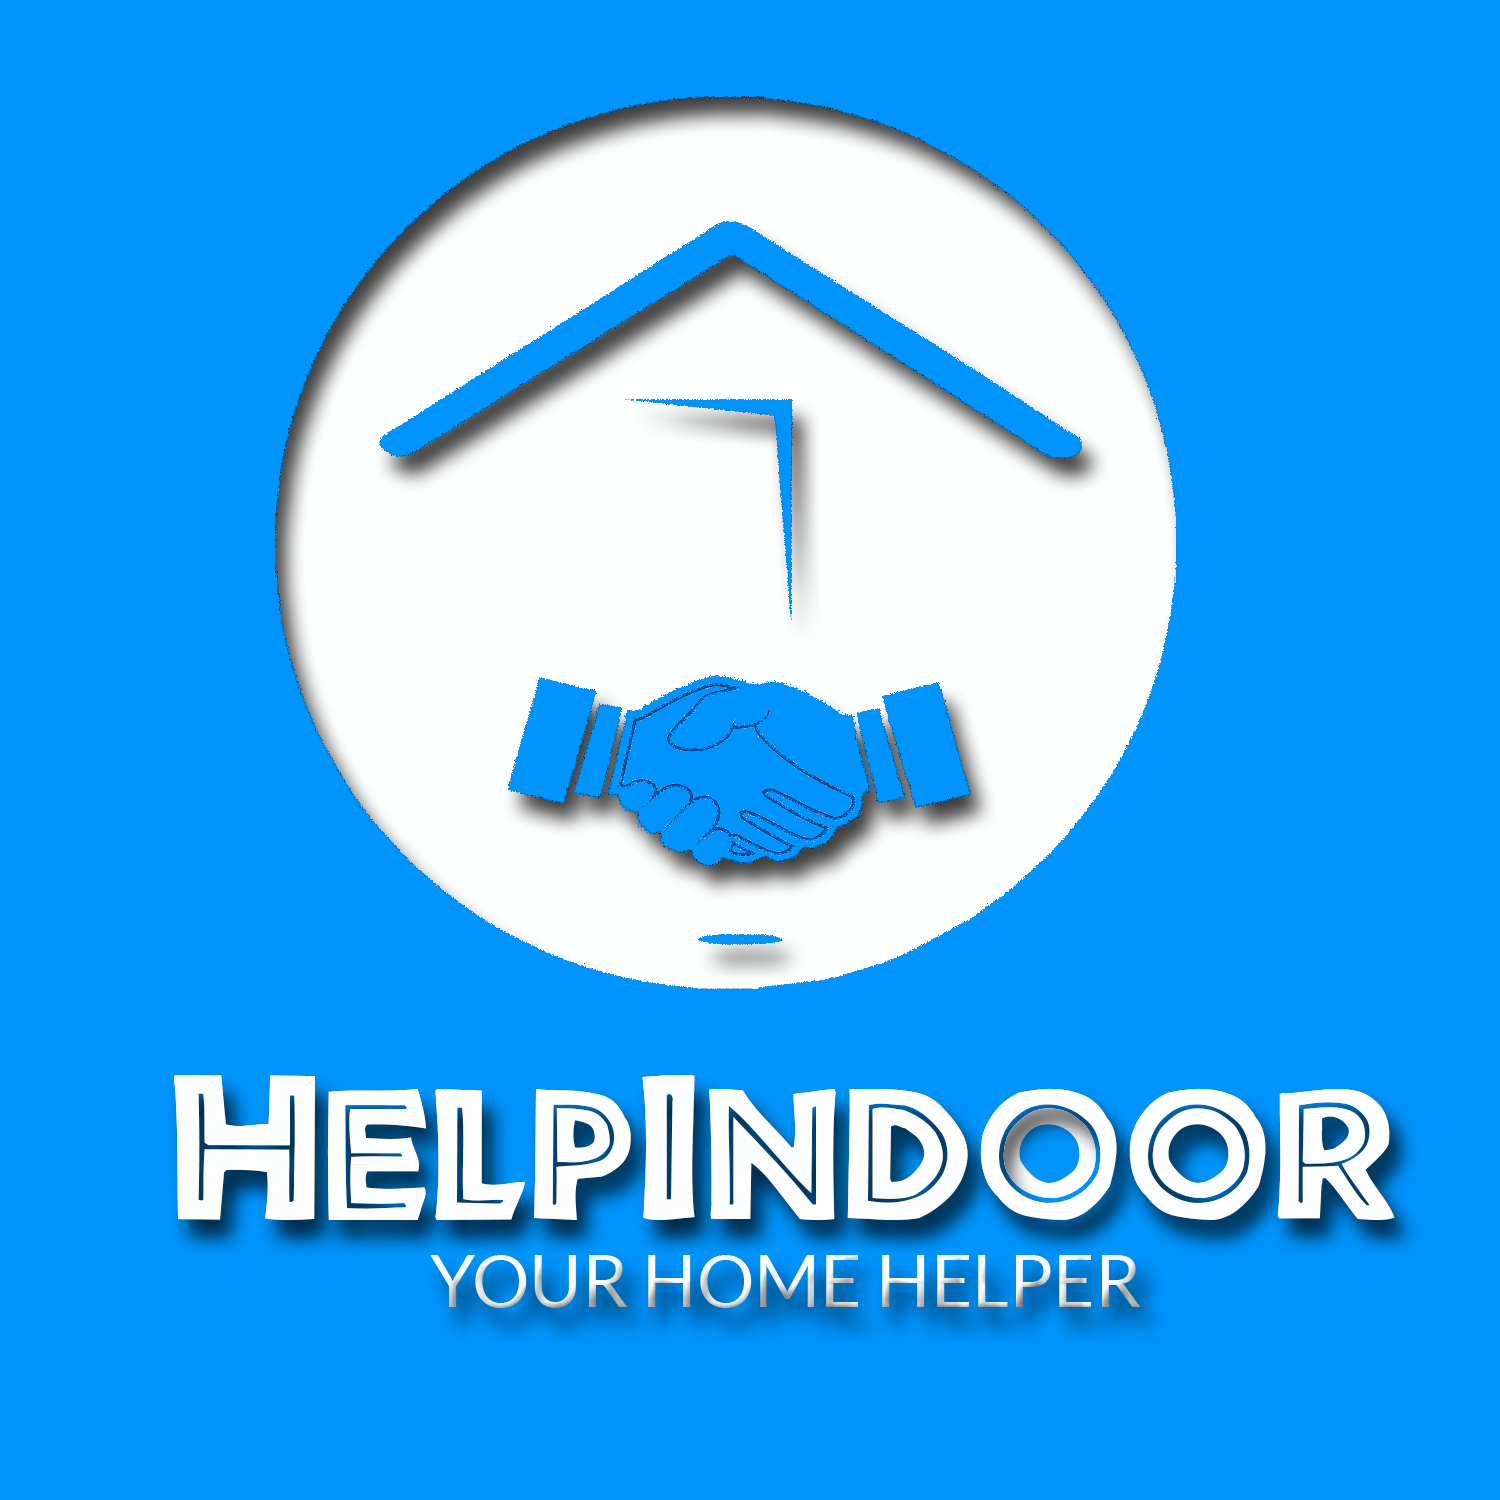 HELPINDOOR